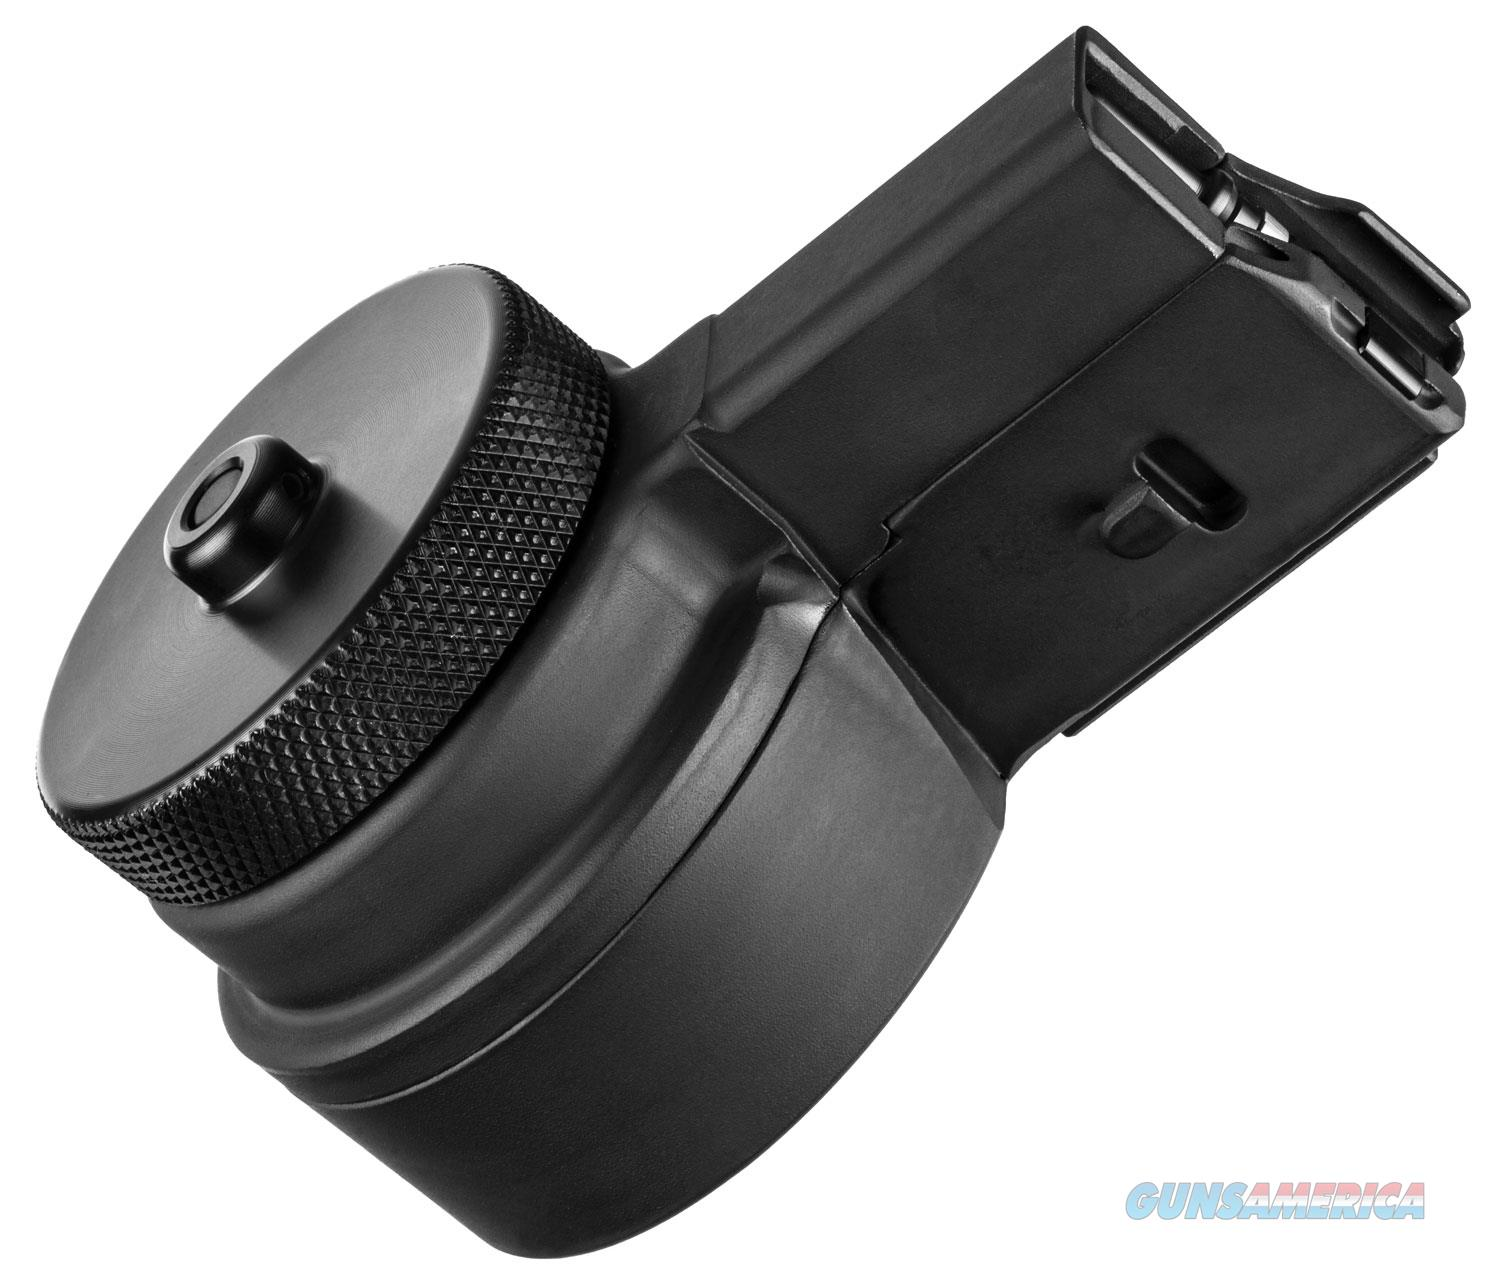 X-Products AR15 Drum Magazine 50rd 223 AR-15 MAG  Non-Guns > Magazines & Clips > Rifle Magazines > AR-15 Type